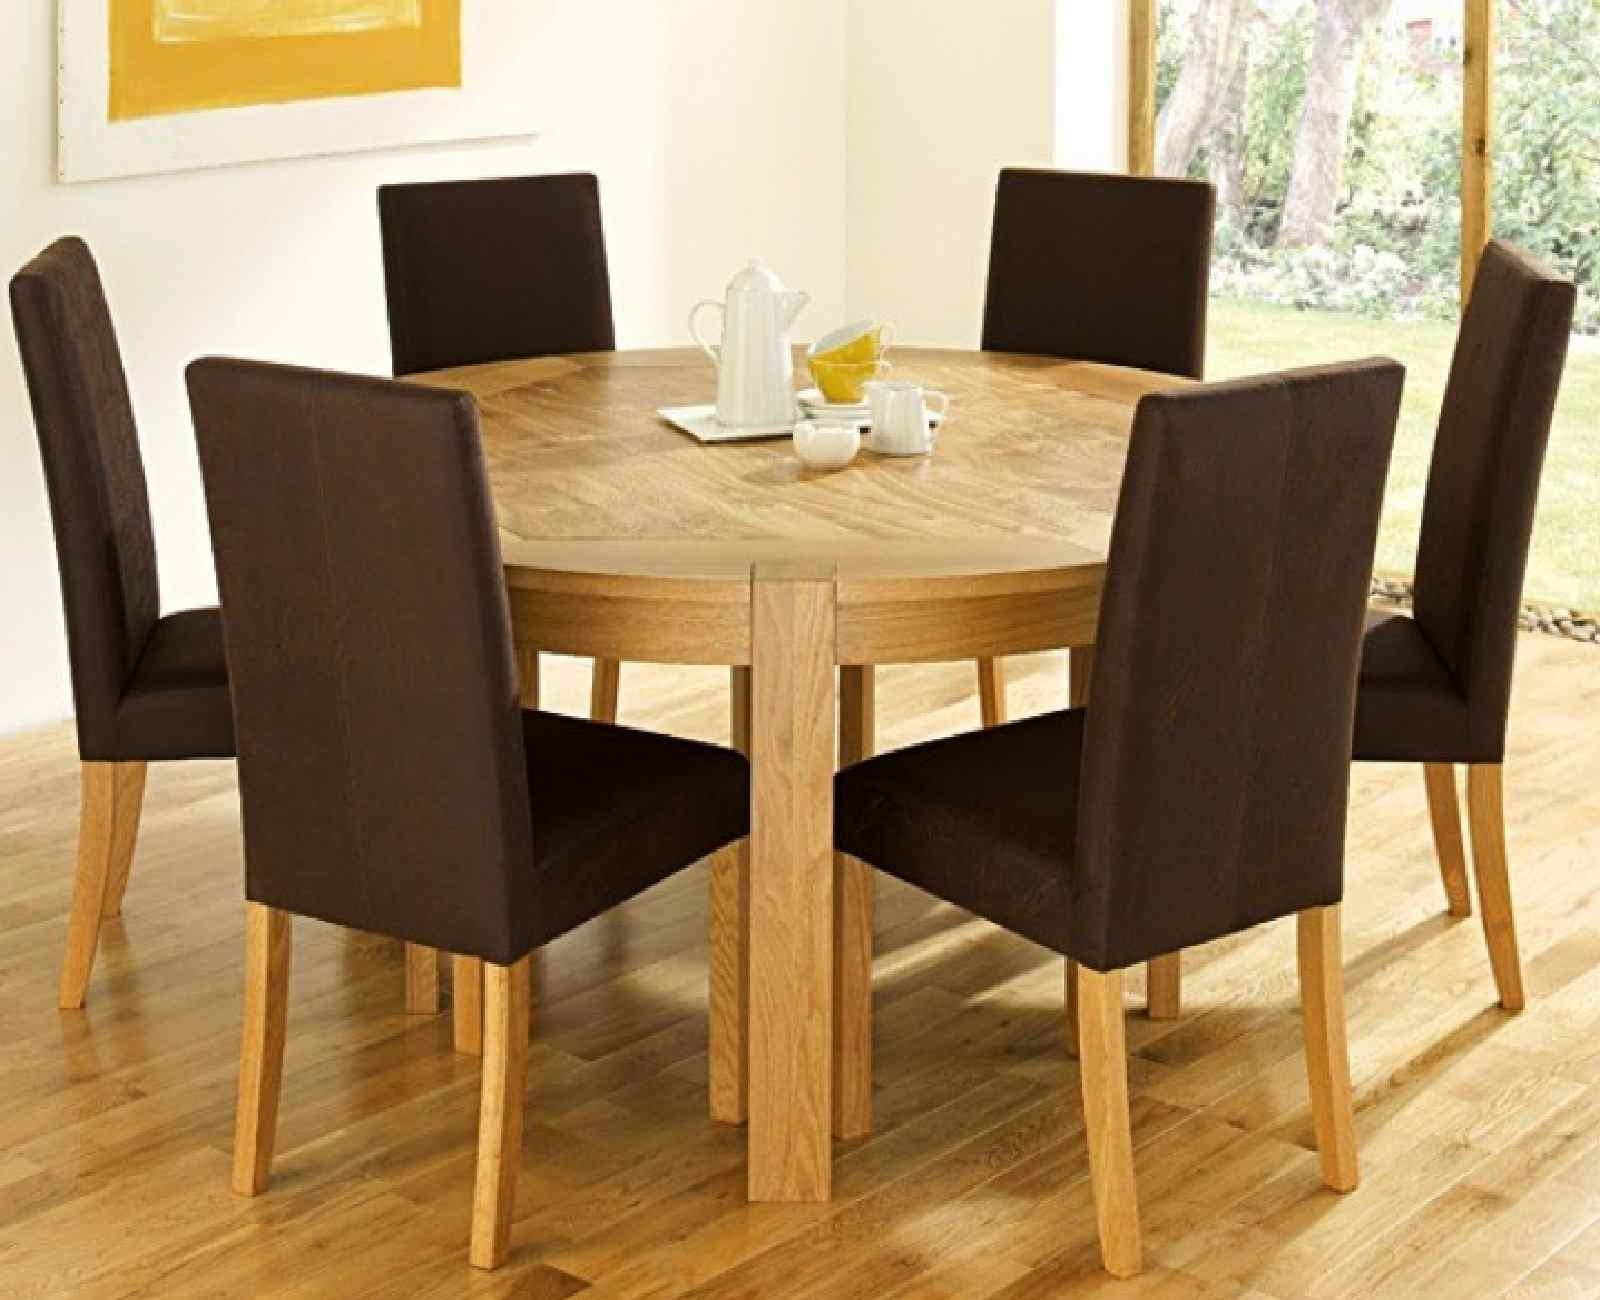 Newest Round Dining Table Set For 6 – Castrophotos Pertaining To Parquet 6 Piece Dining Sets (View 14 of 25)